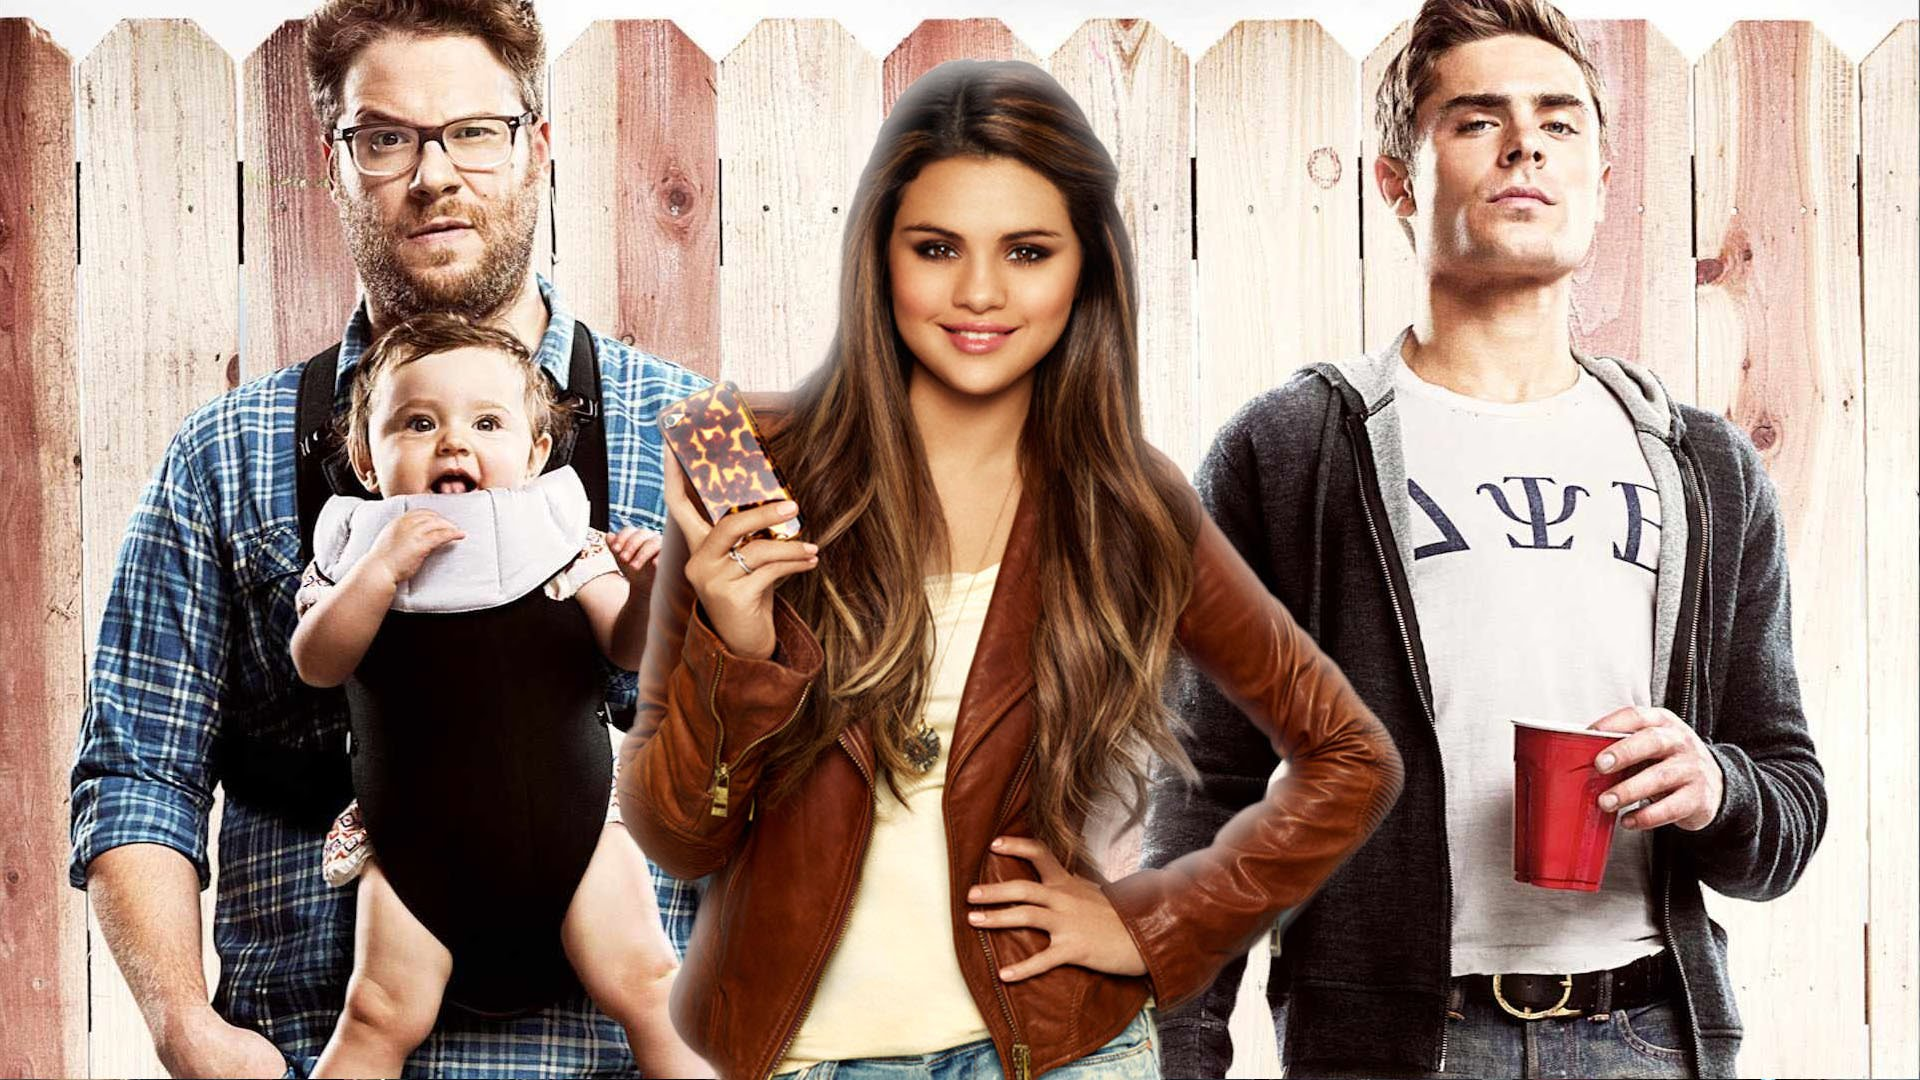 Zac efron and seth rogen and chloe grace moretz